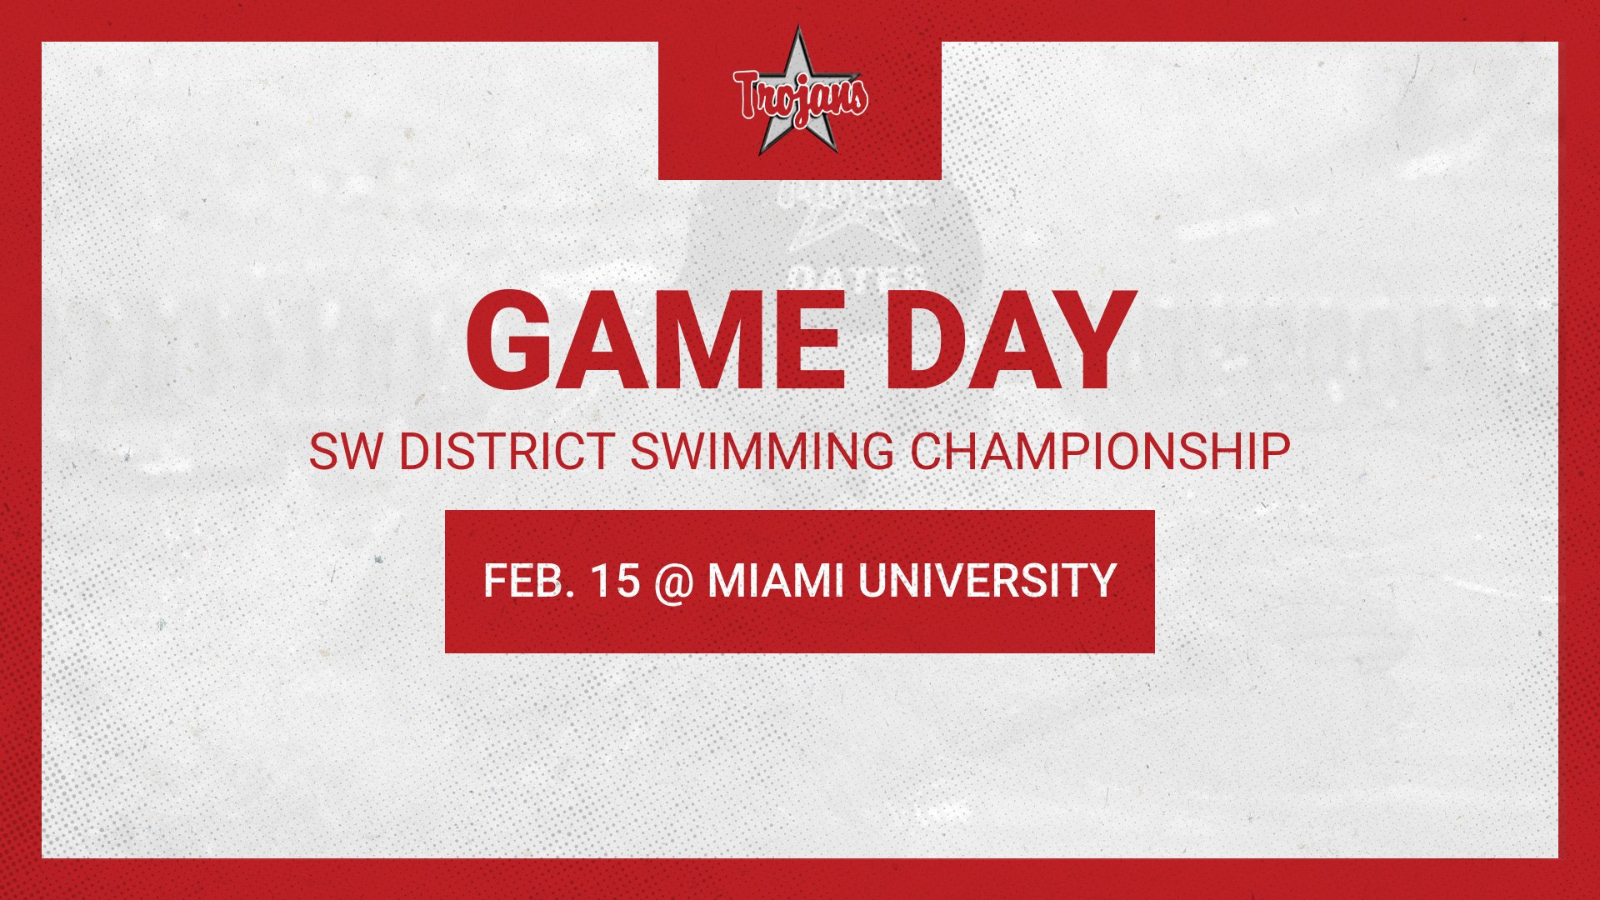 Swimming at SW District Championships